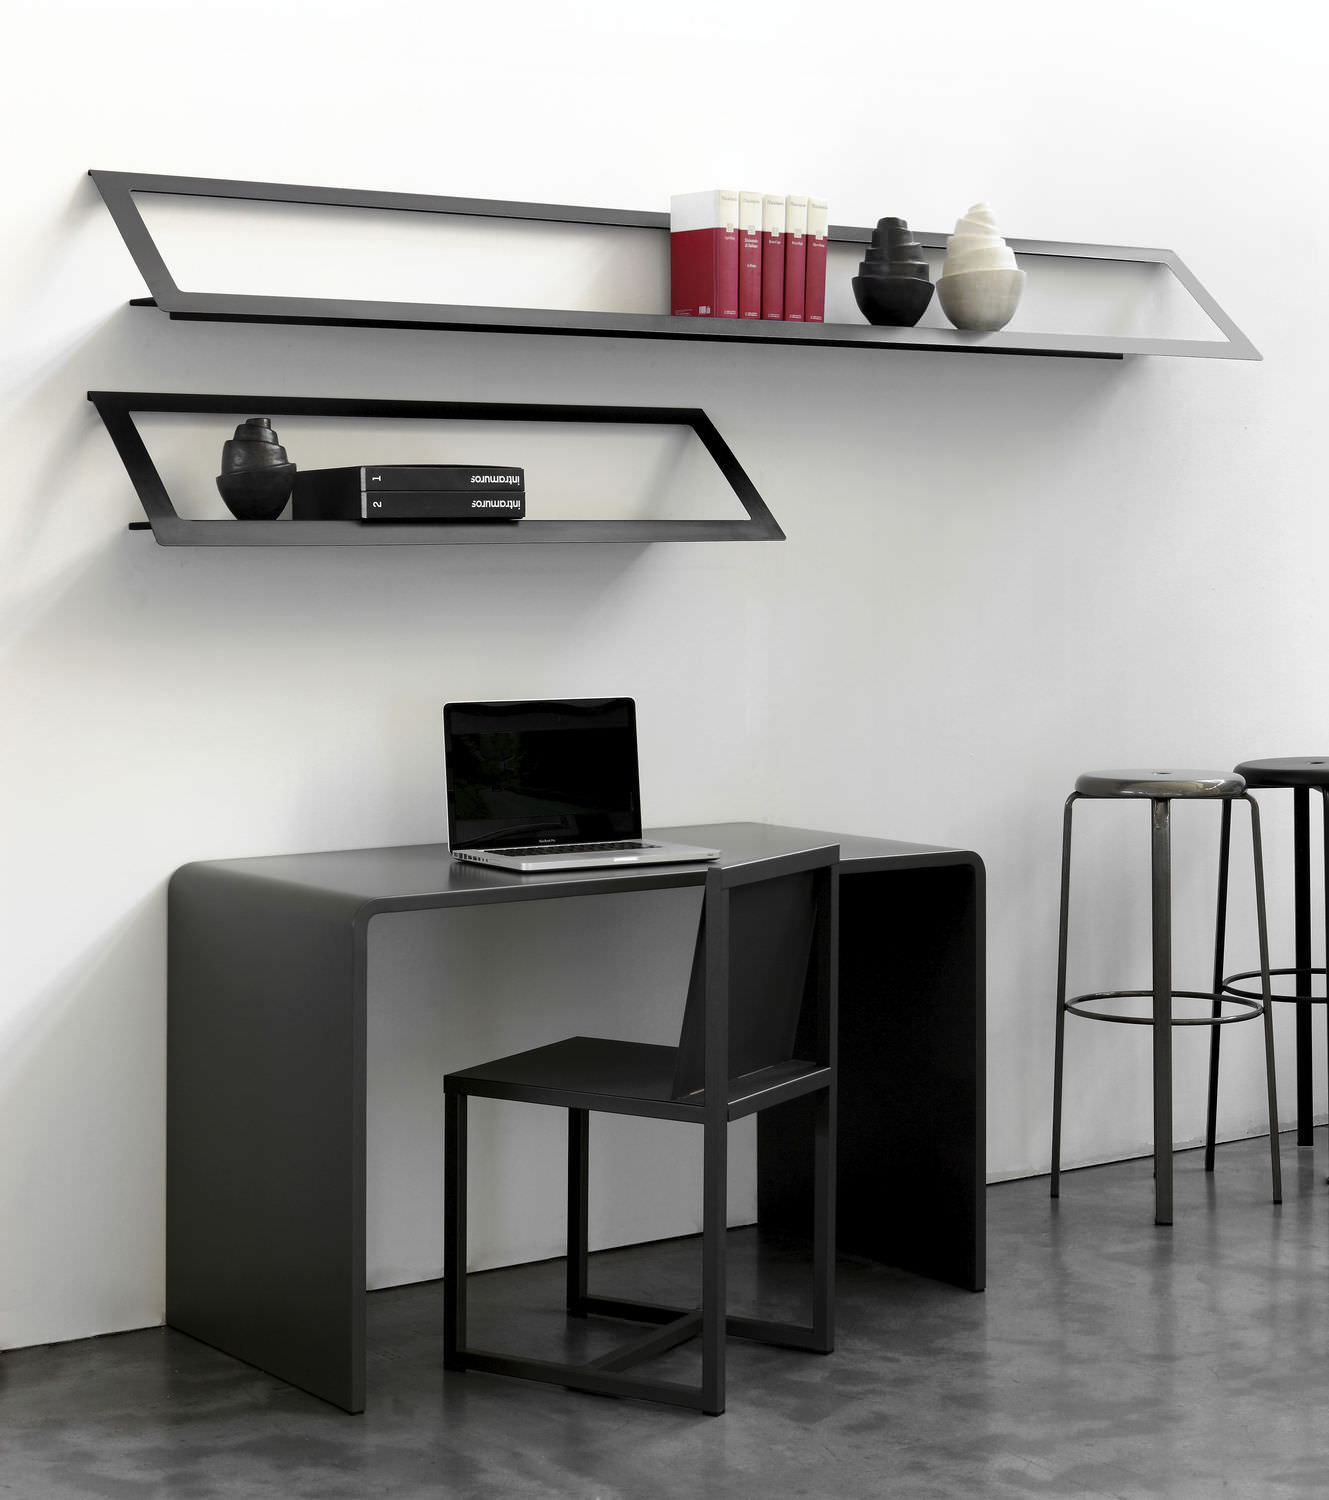 Cheap Decorative Metal Wall Shelf Inarace With Bedroom Wall Shelves Ideas